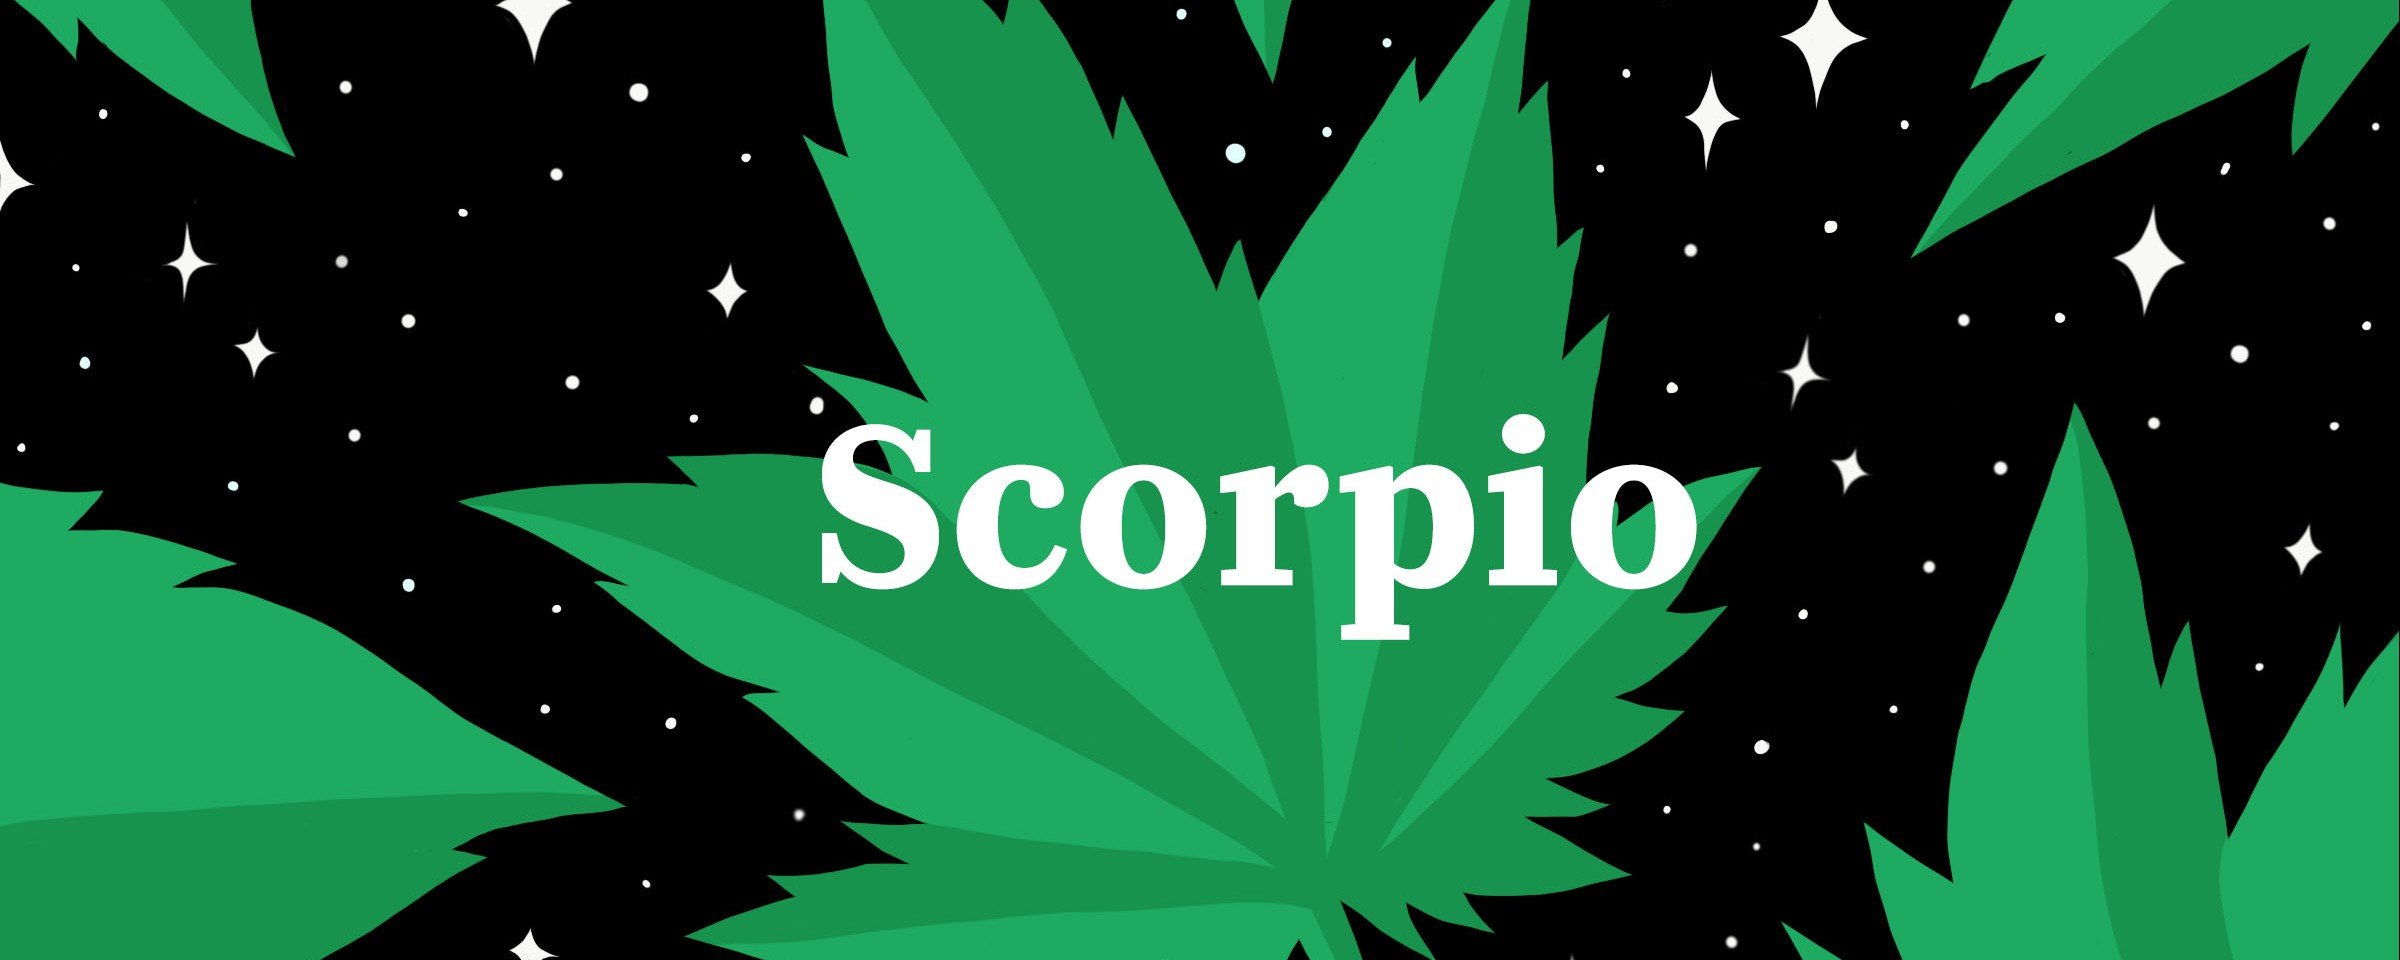 Scorpio fuck a how to How to